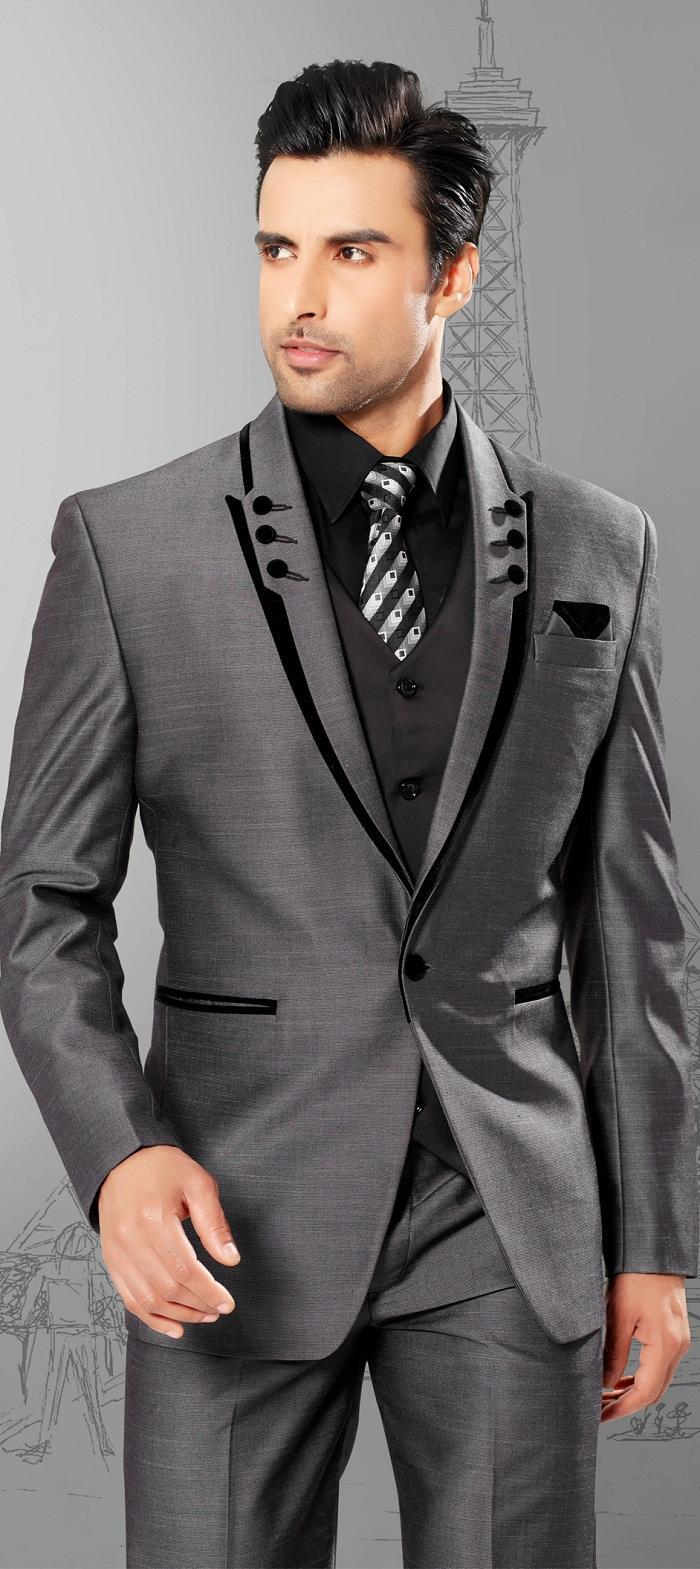 Cheap Black Suits For Men 2017 | Lxmsuite - Part 713